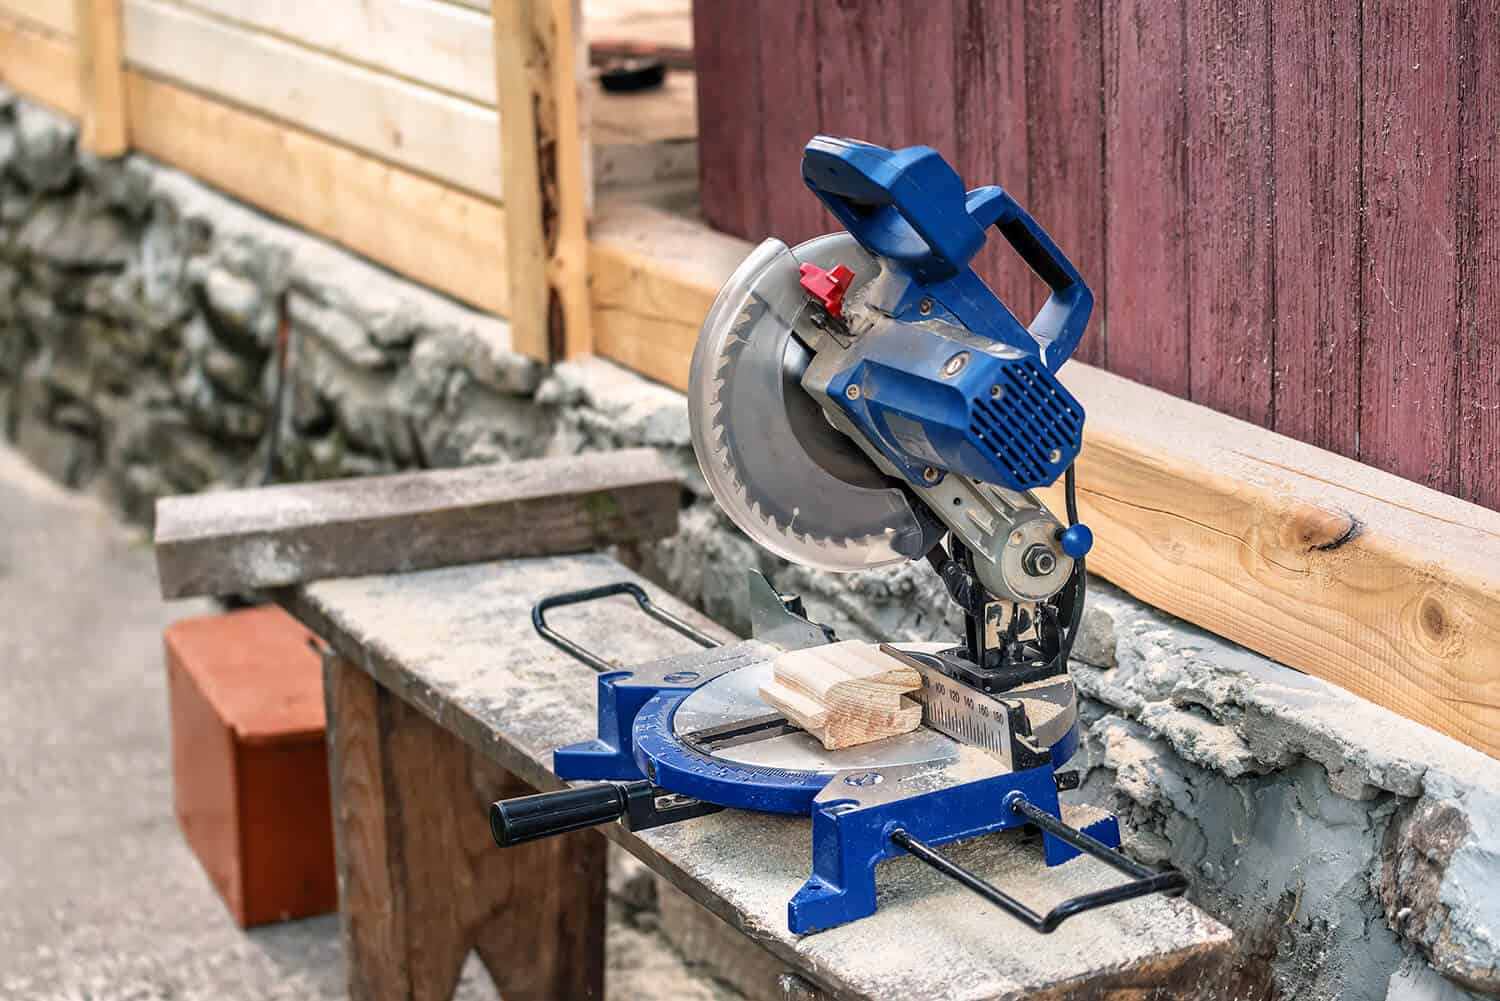 Can a 10-inch miter saw cut a 4x4